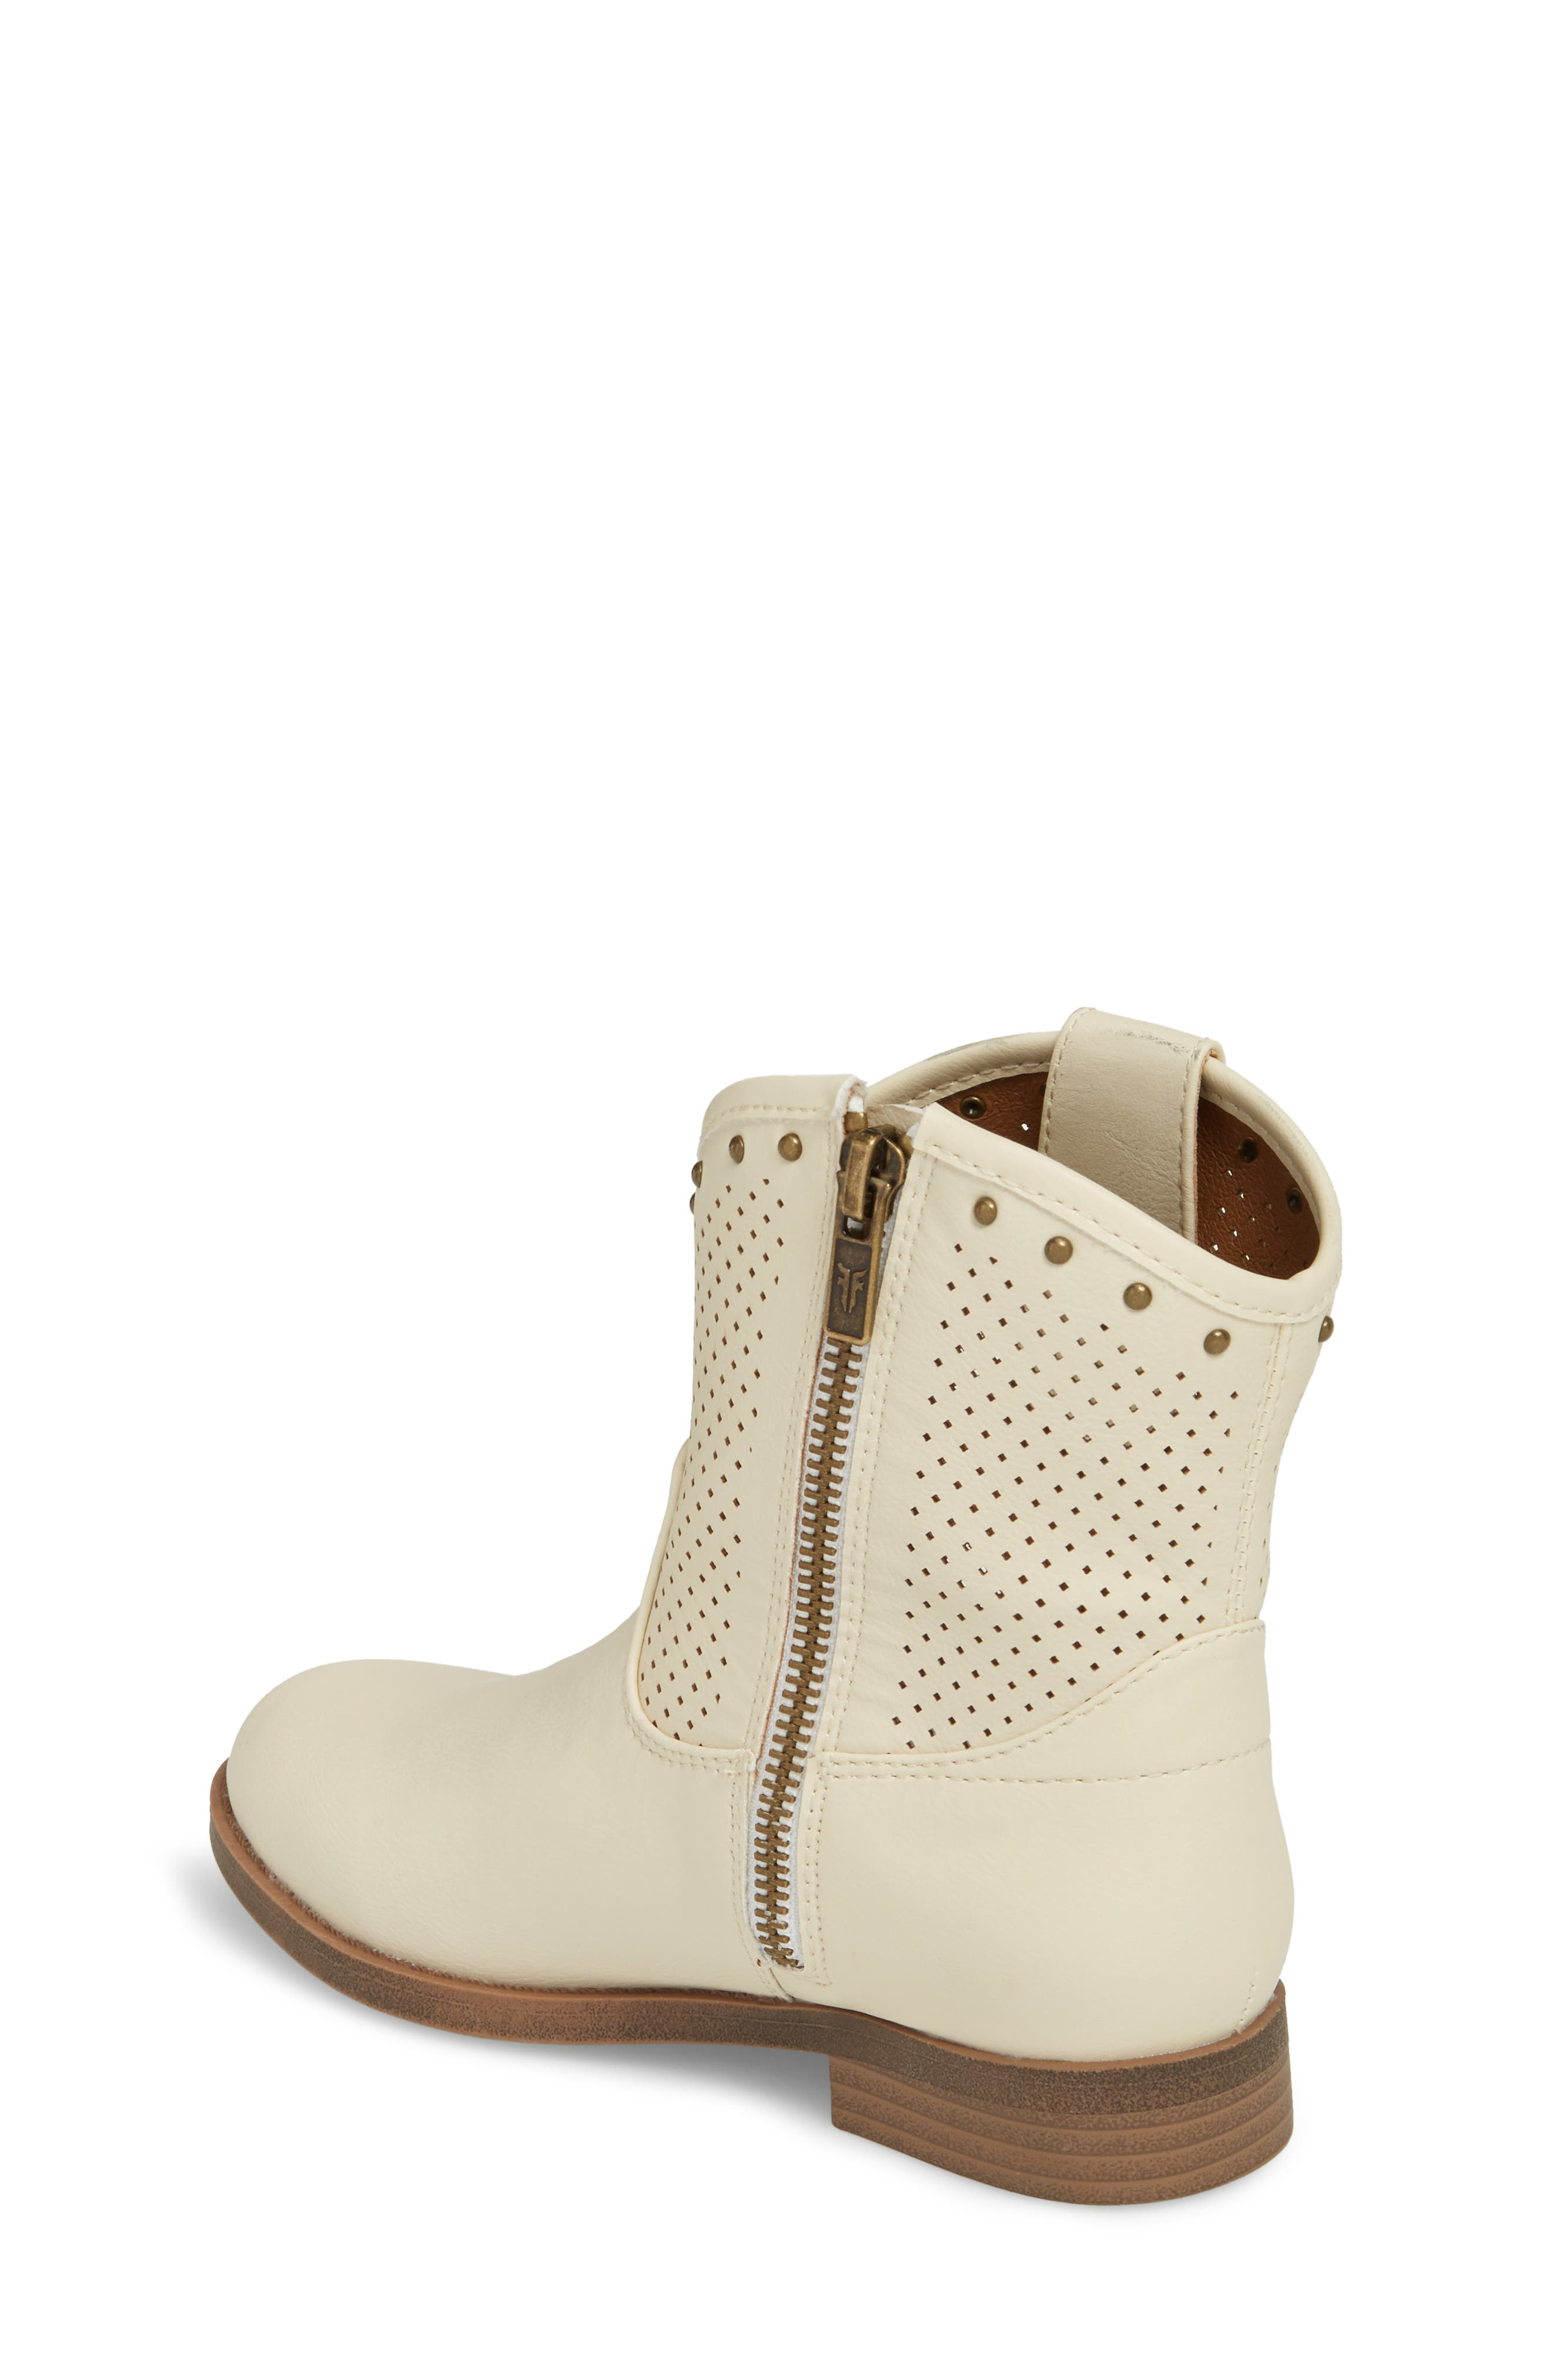 Melissa Perforated Button Boot,                             Alternate thumbnail 2, color,                             White